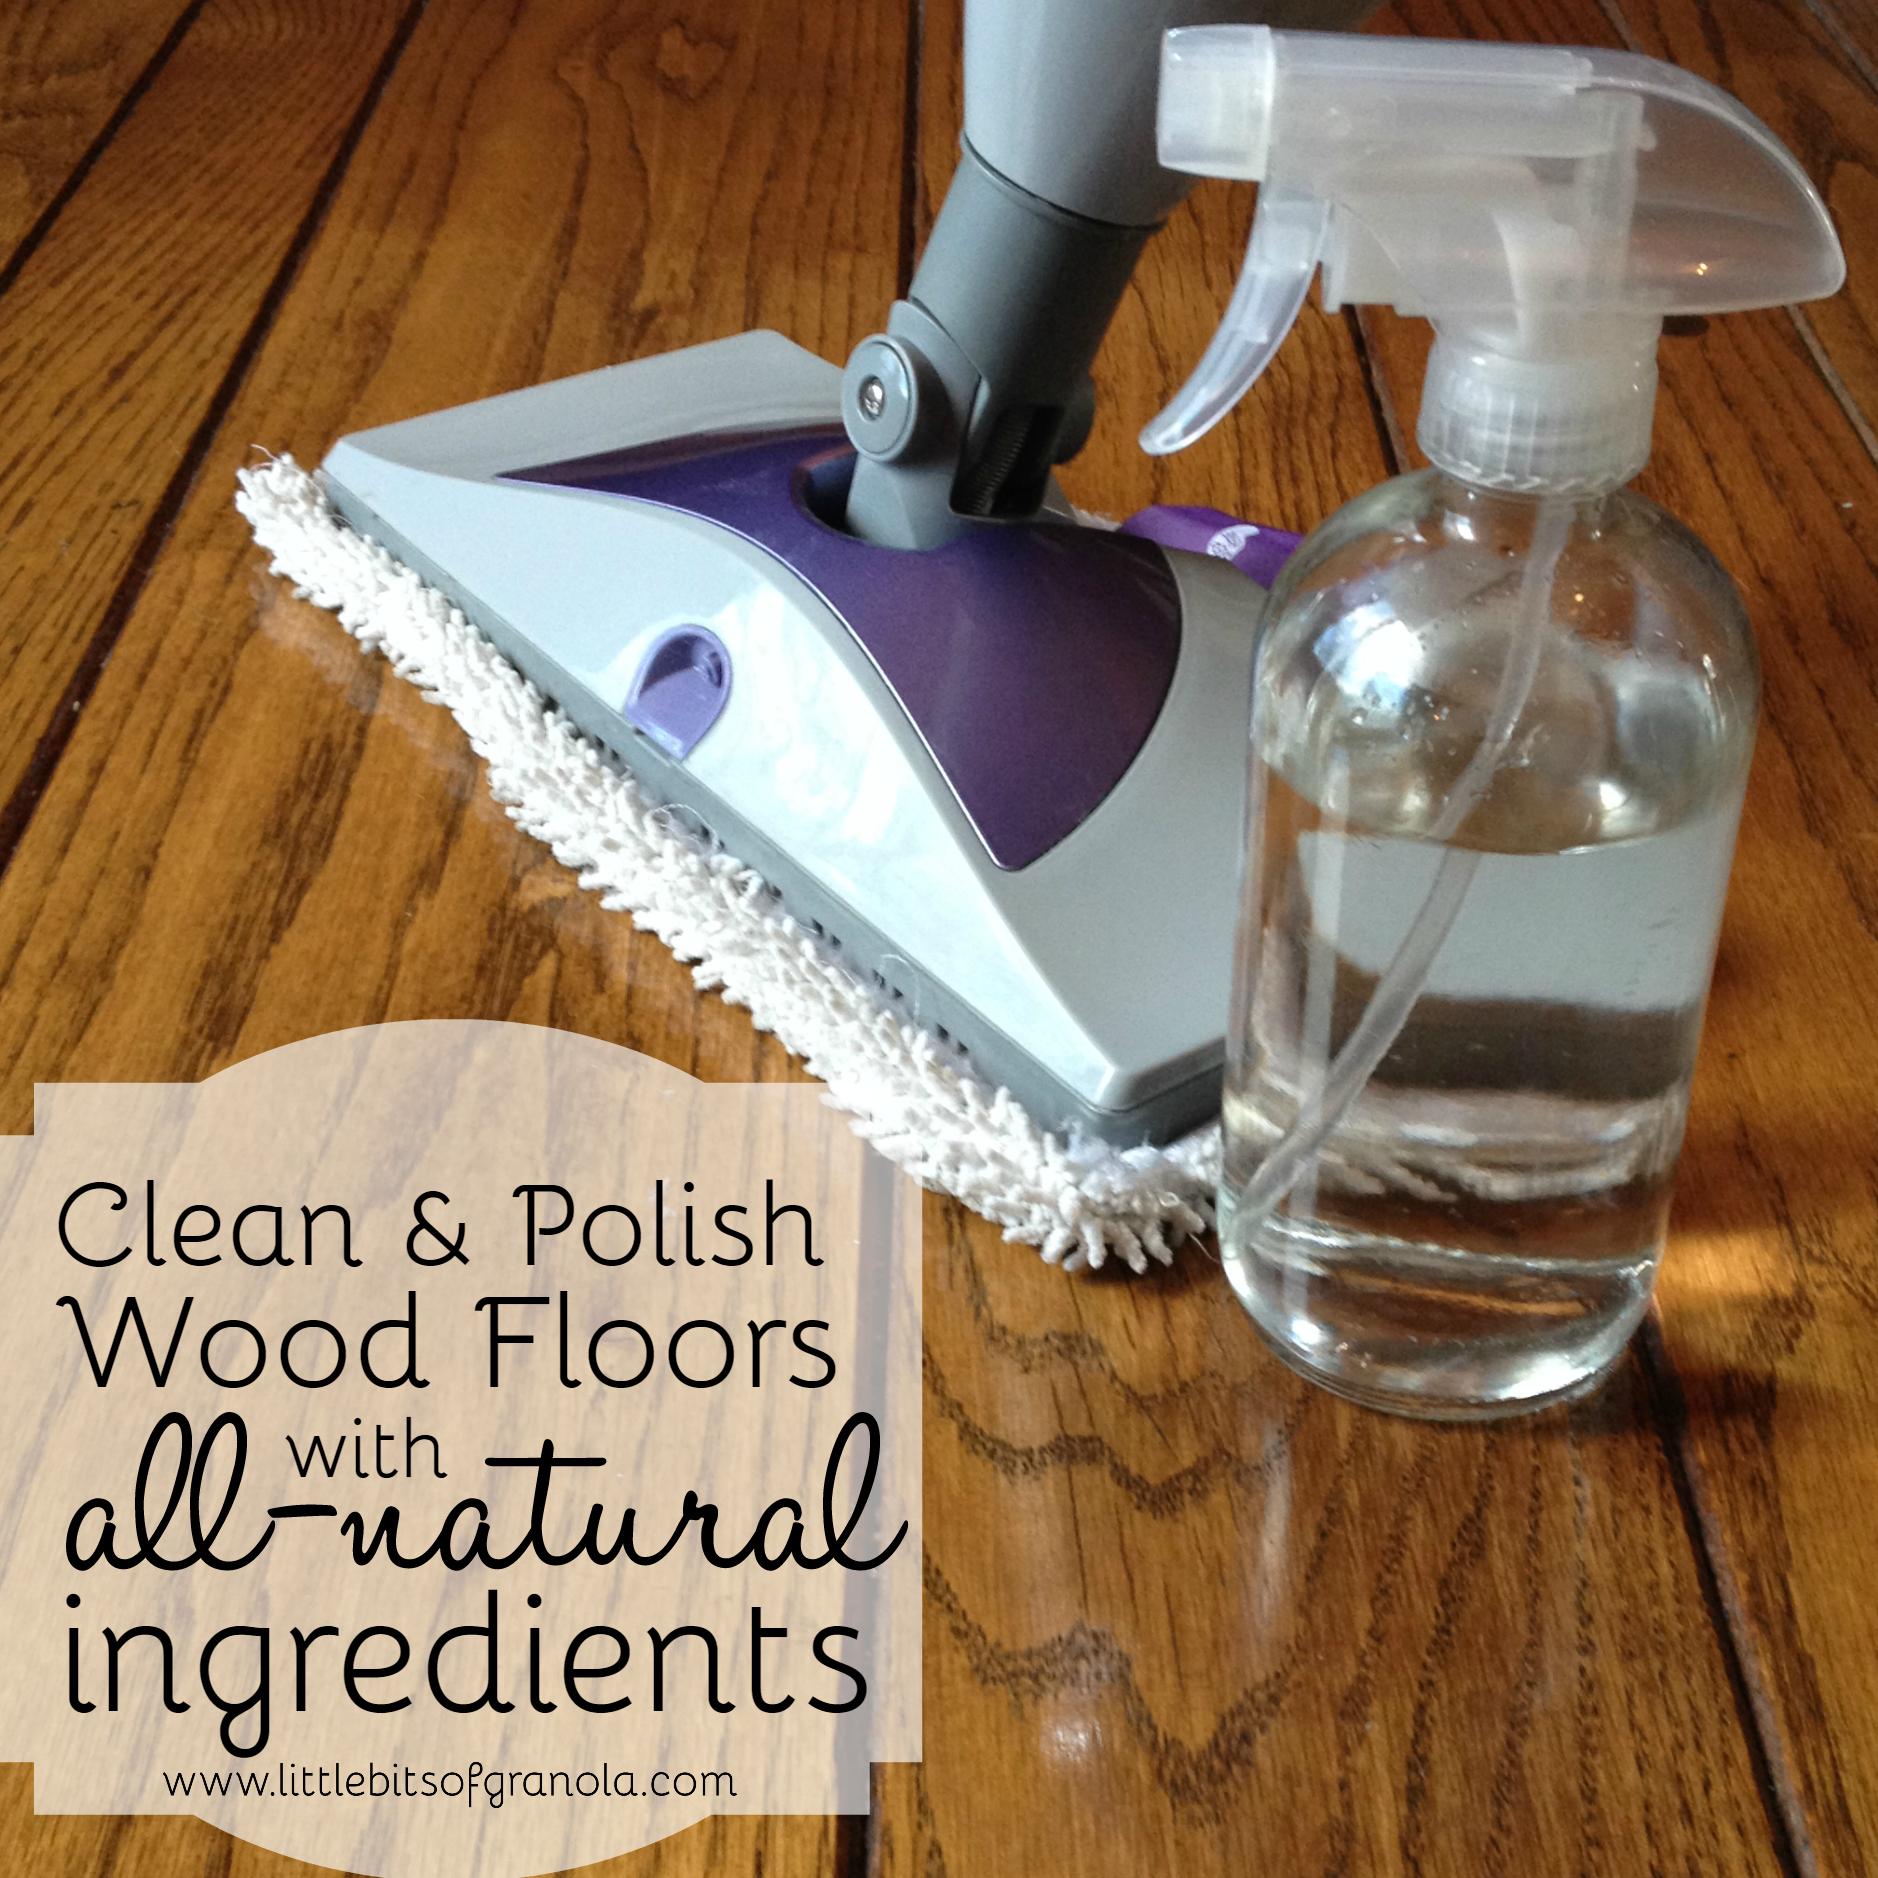 Best floor cleaner for wood floors - Simple Recipes To Clean And Polish Wood Floors